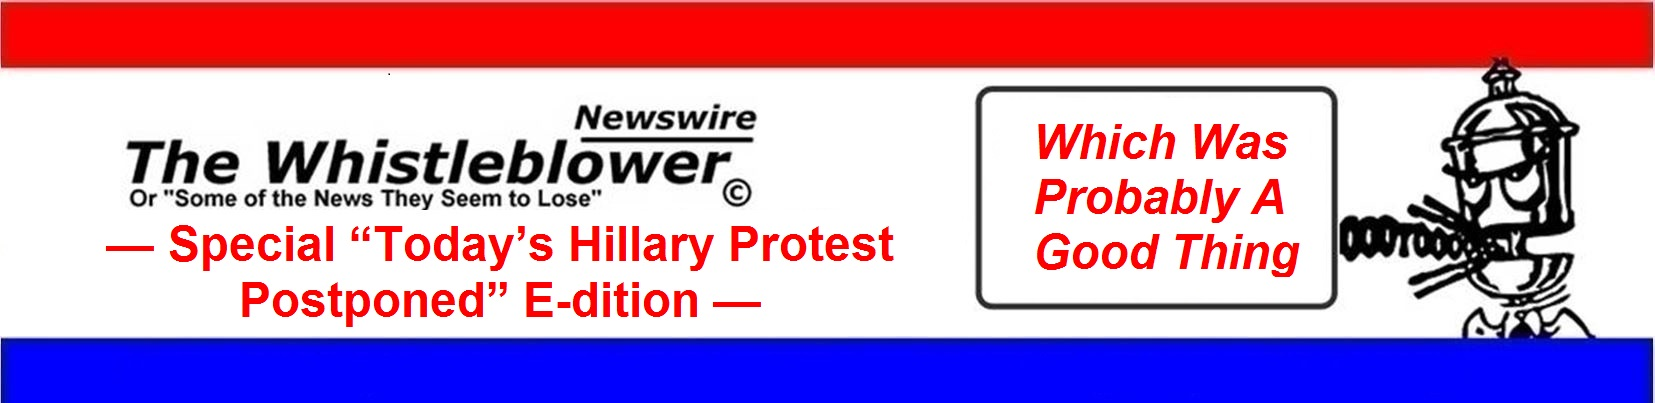 JUNE 13 HILLARY PROTEST